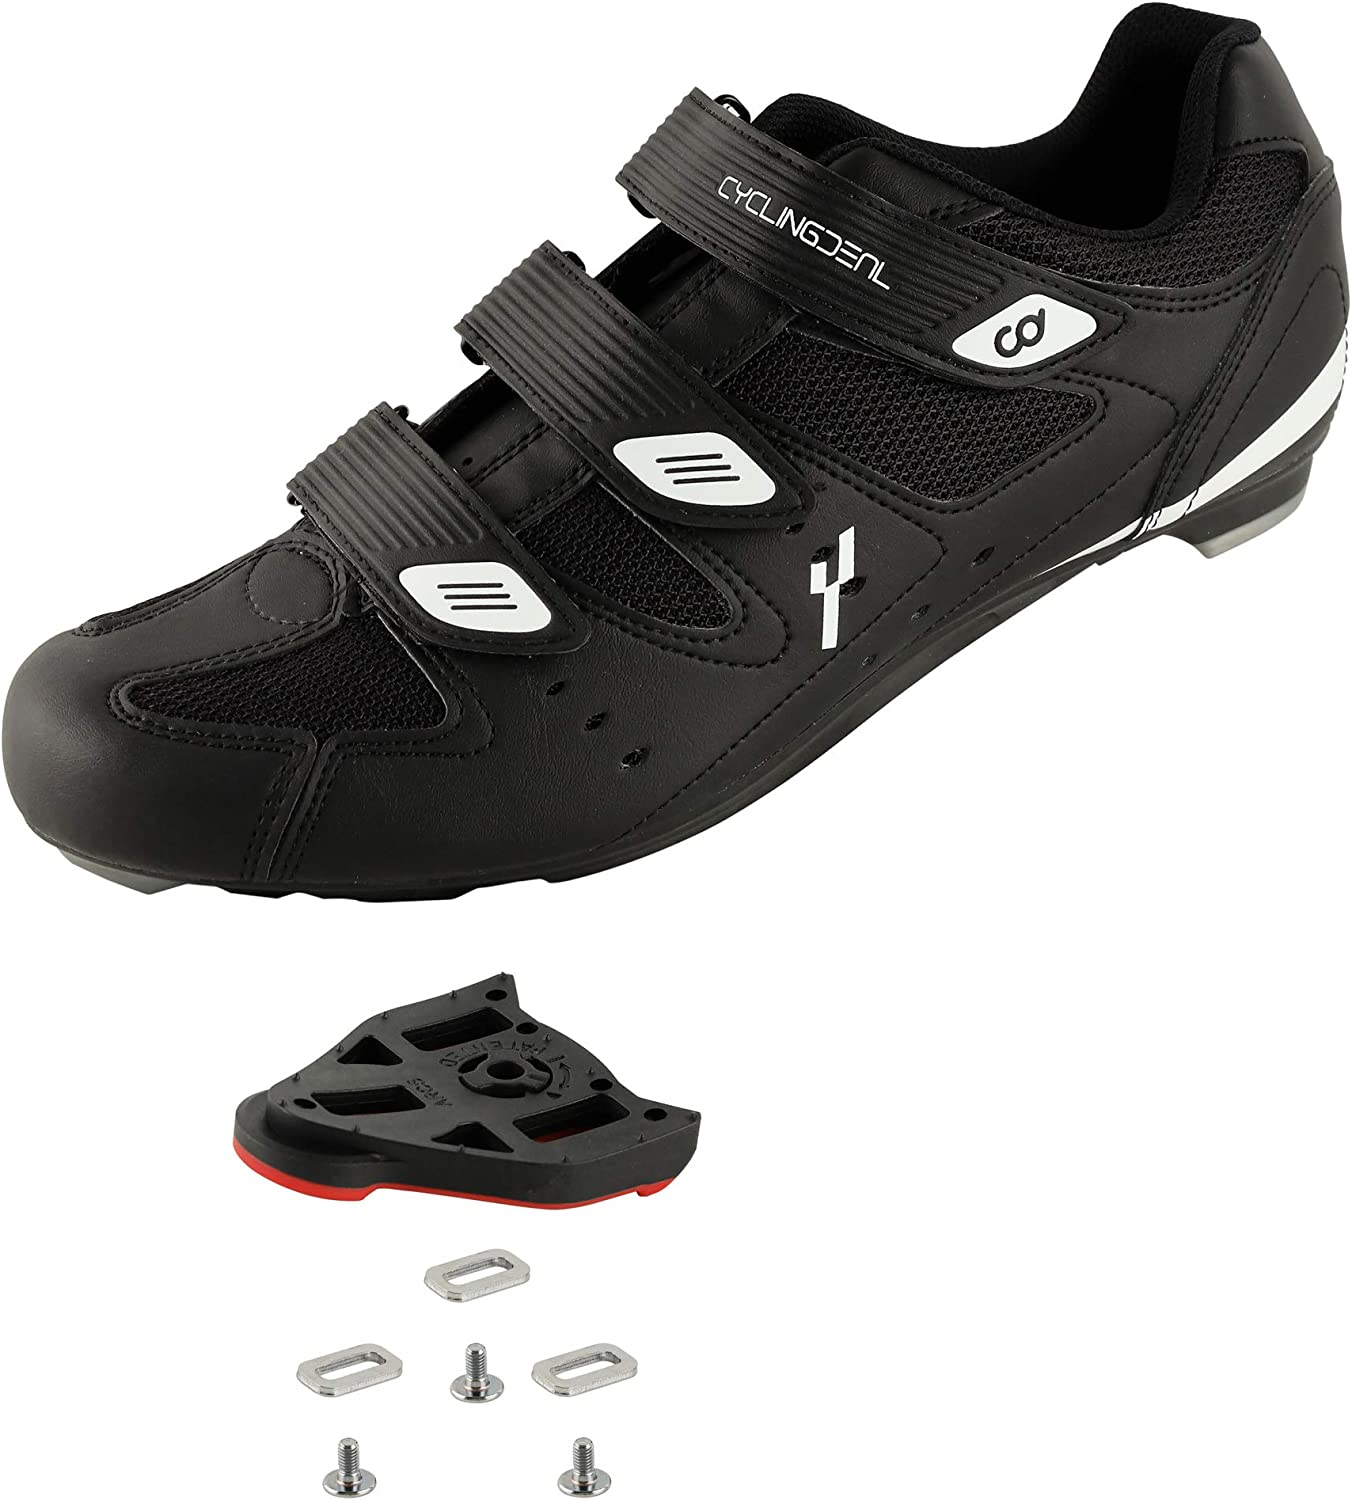 CyclingDeal Bicycle Road Bike Universal Cleat Los Angeles Mall Men's 25% OFF Mount Cyclin